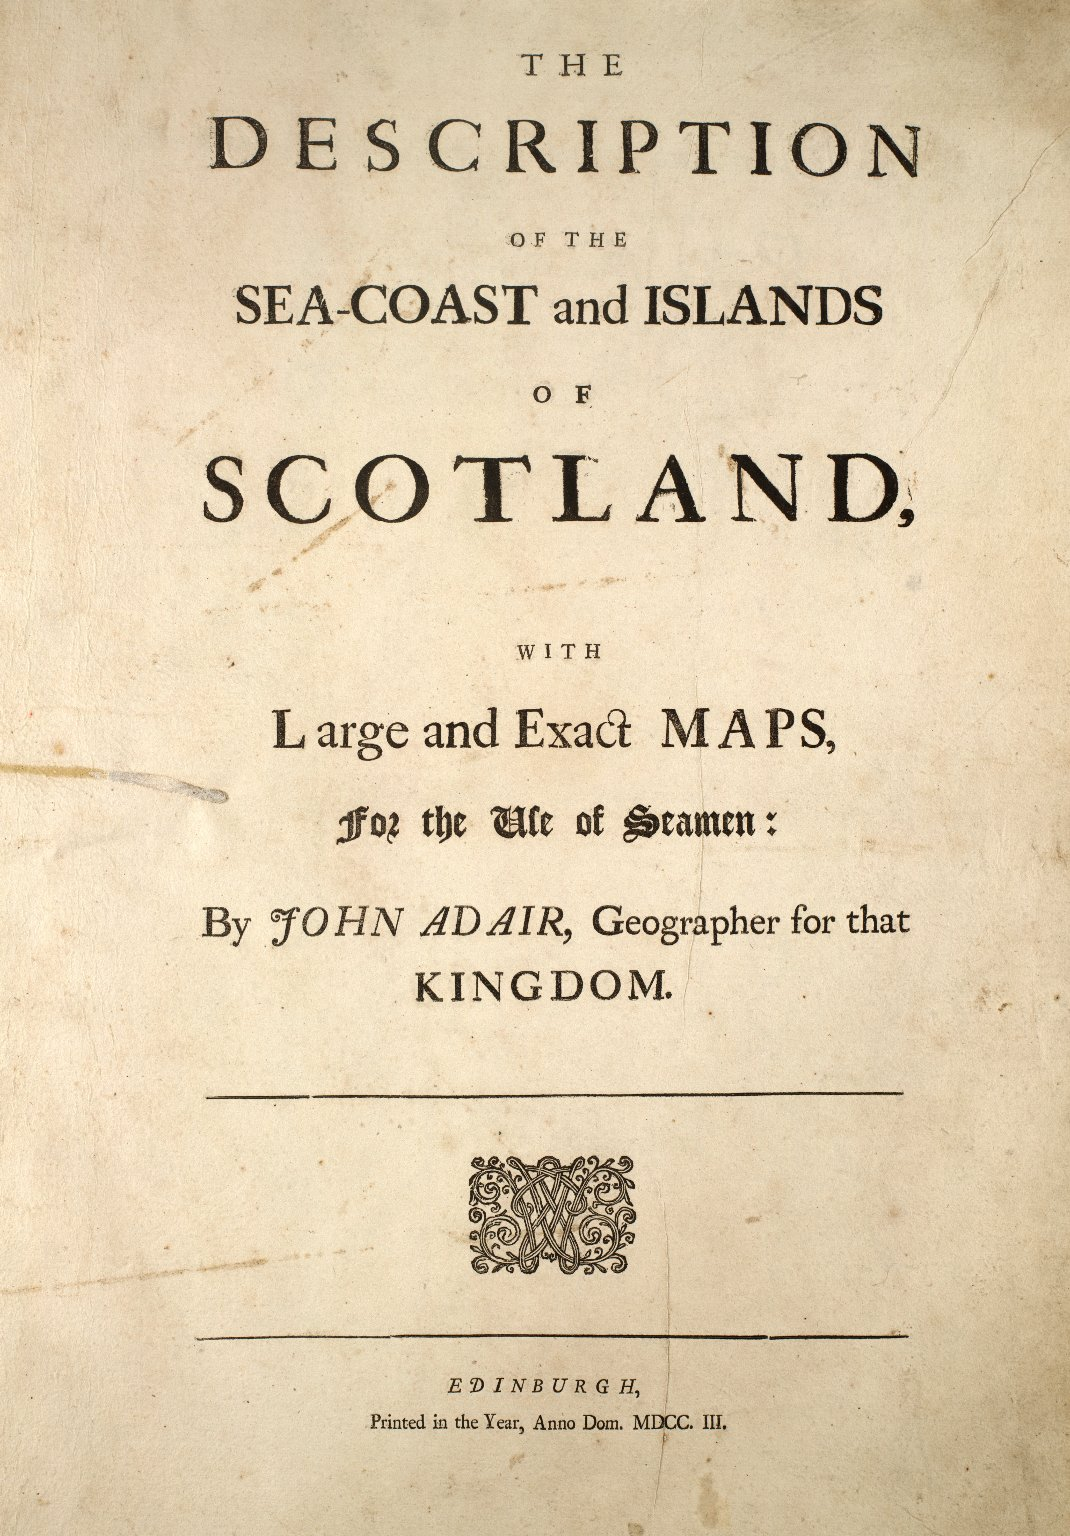 The description of the sea-coast and islands of Scotland, with large and exact maps, for the use of seamen [1 of 1]